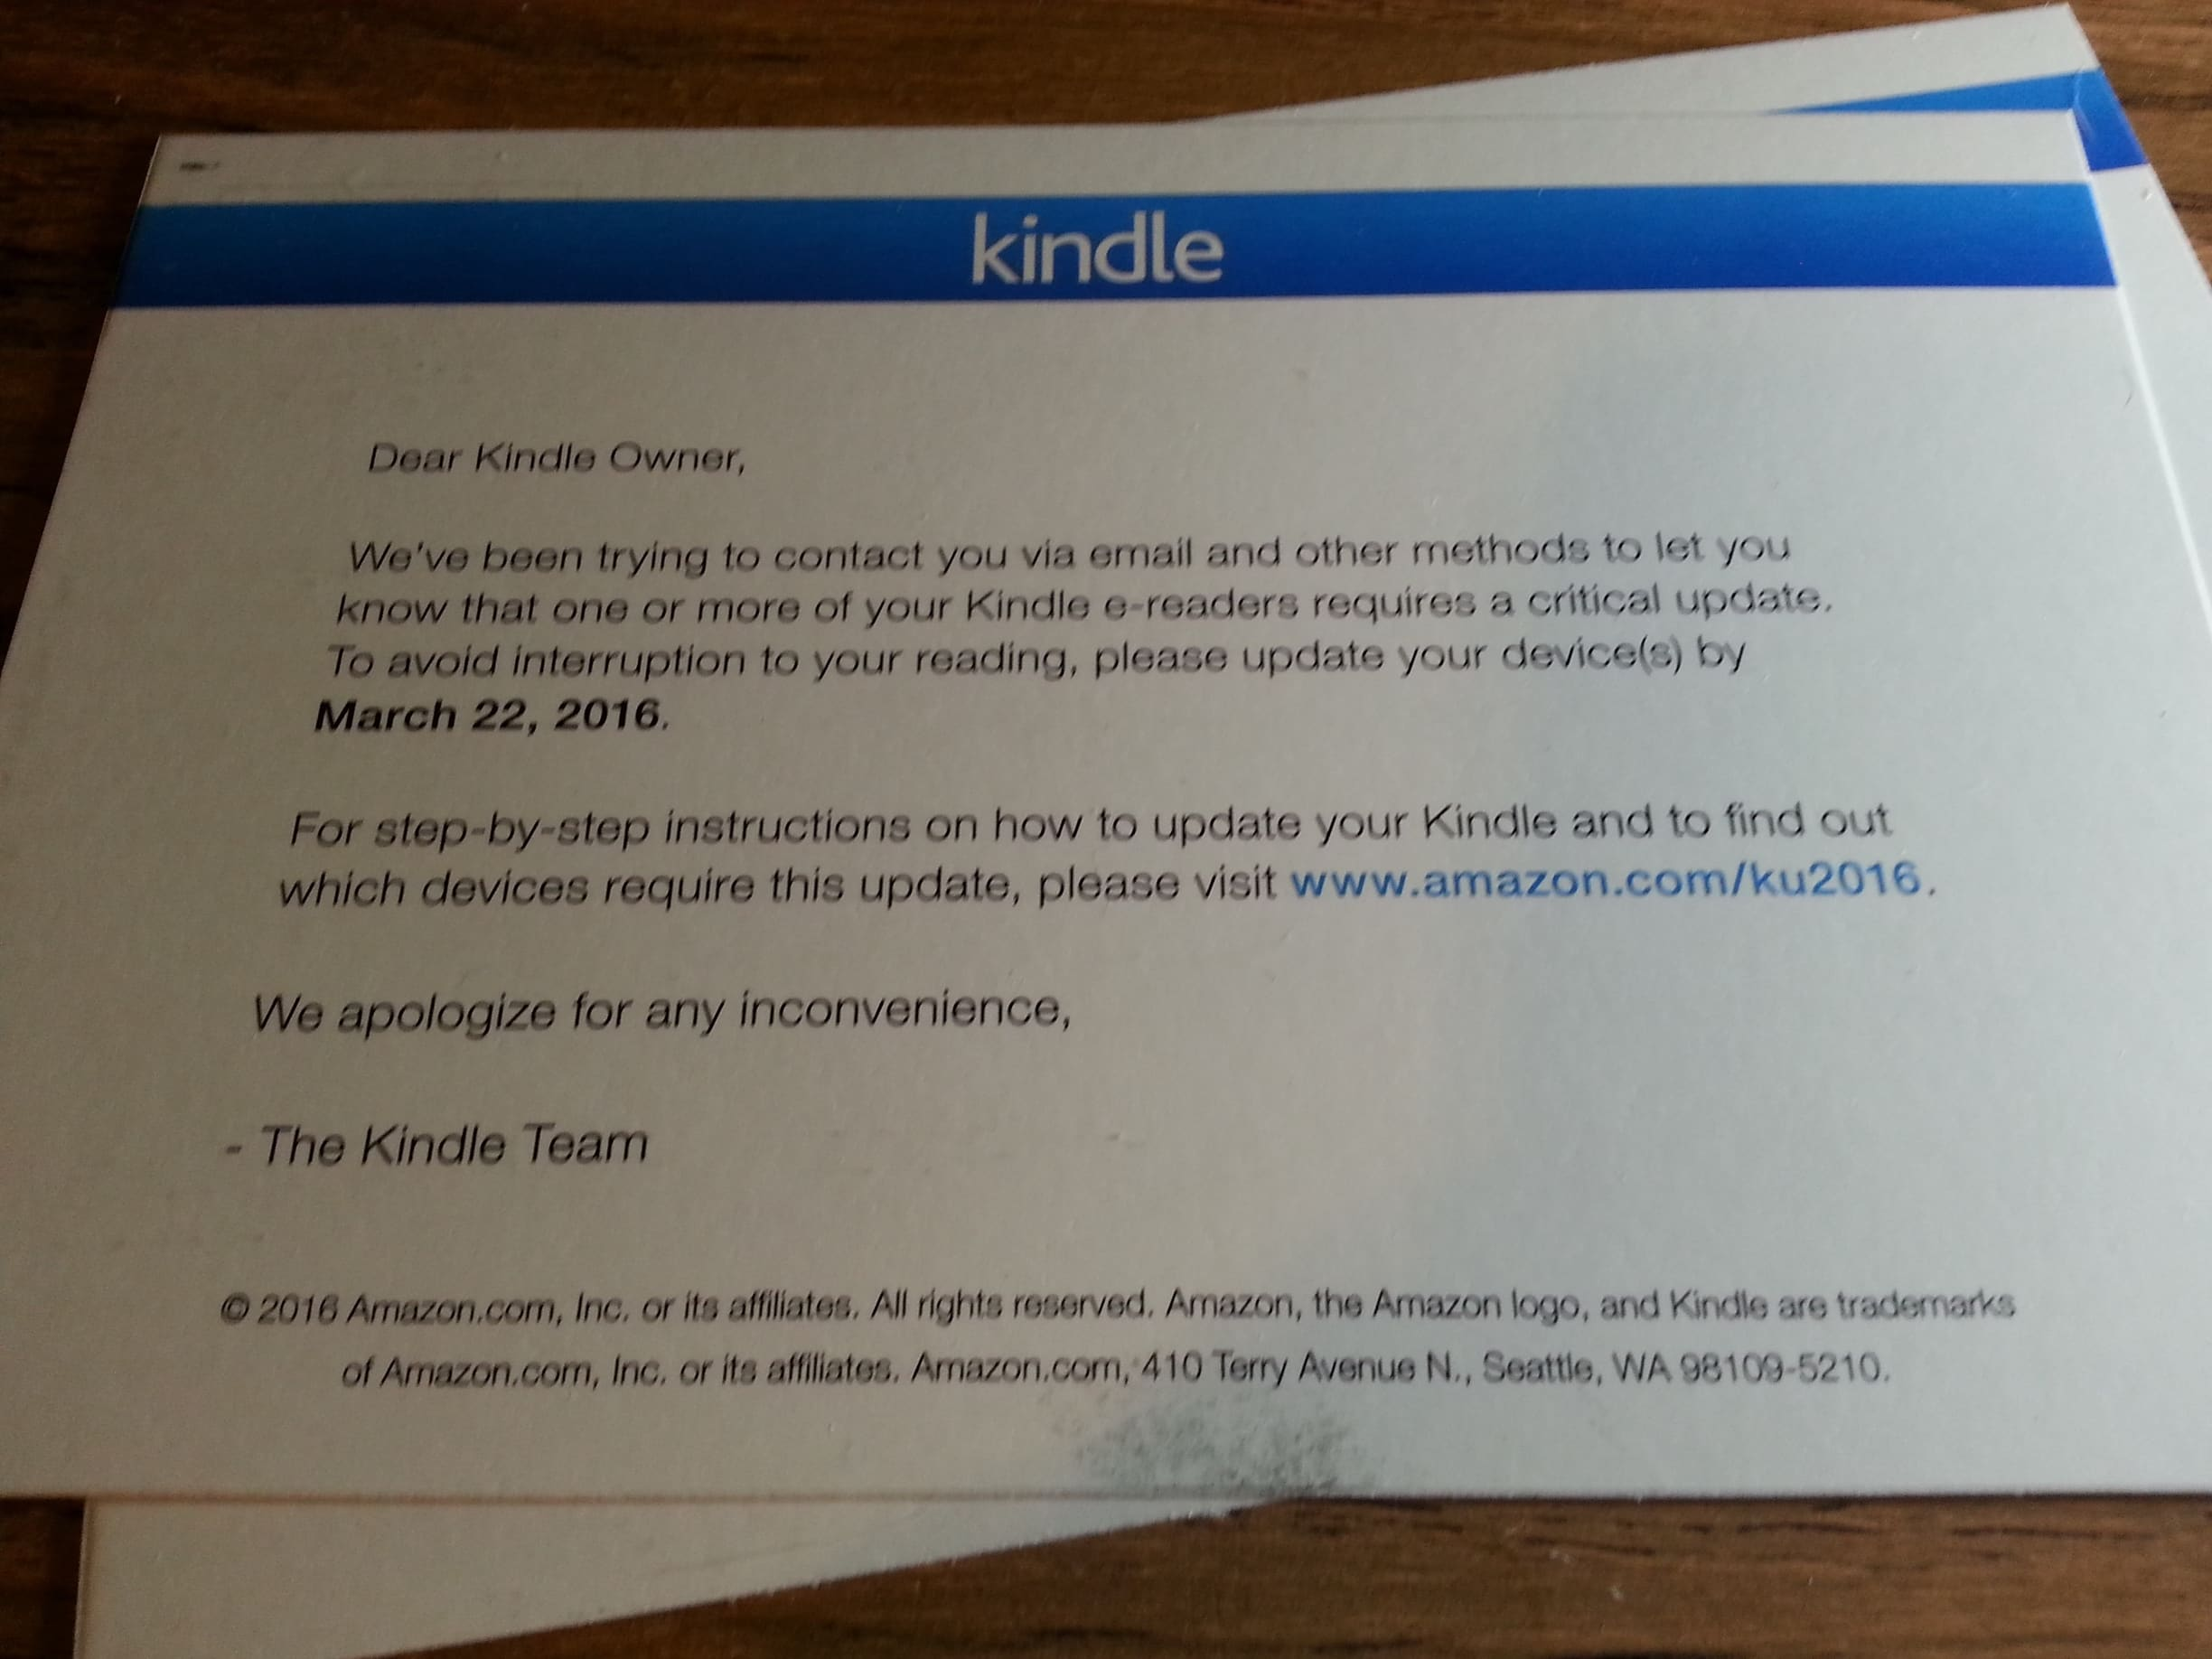 Amazon Now Sending Snail-Mail Reminders to Update Your